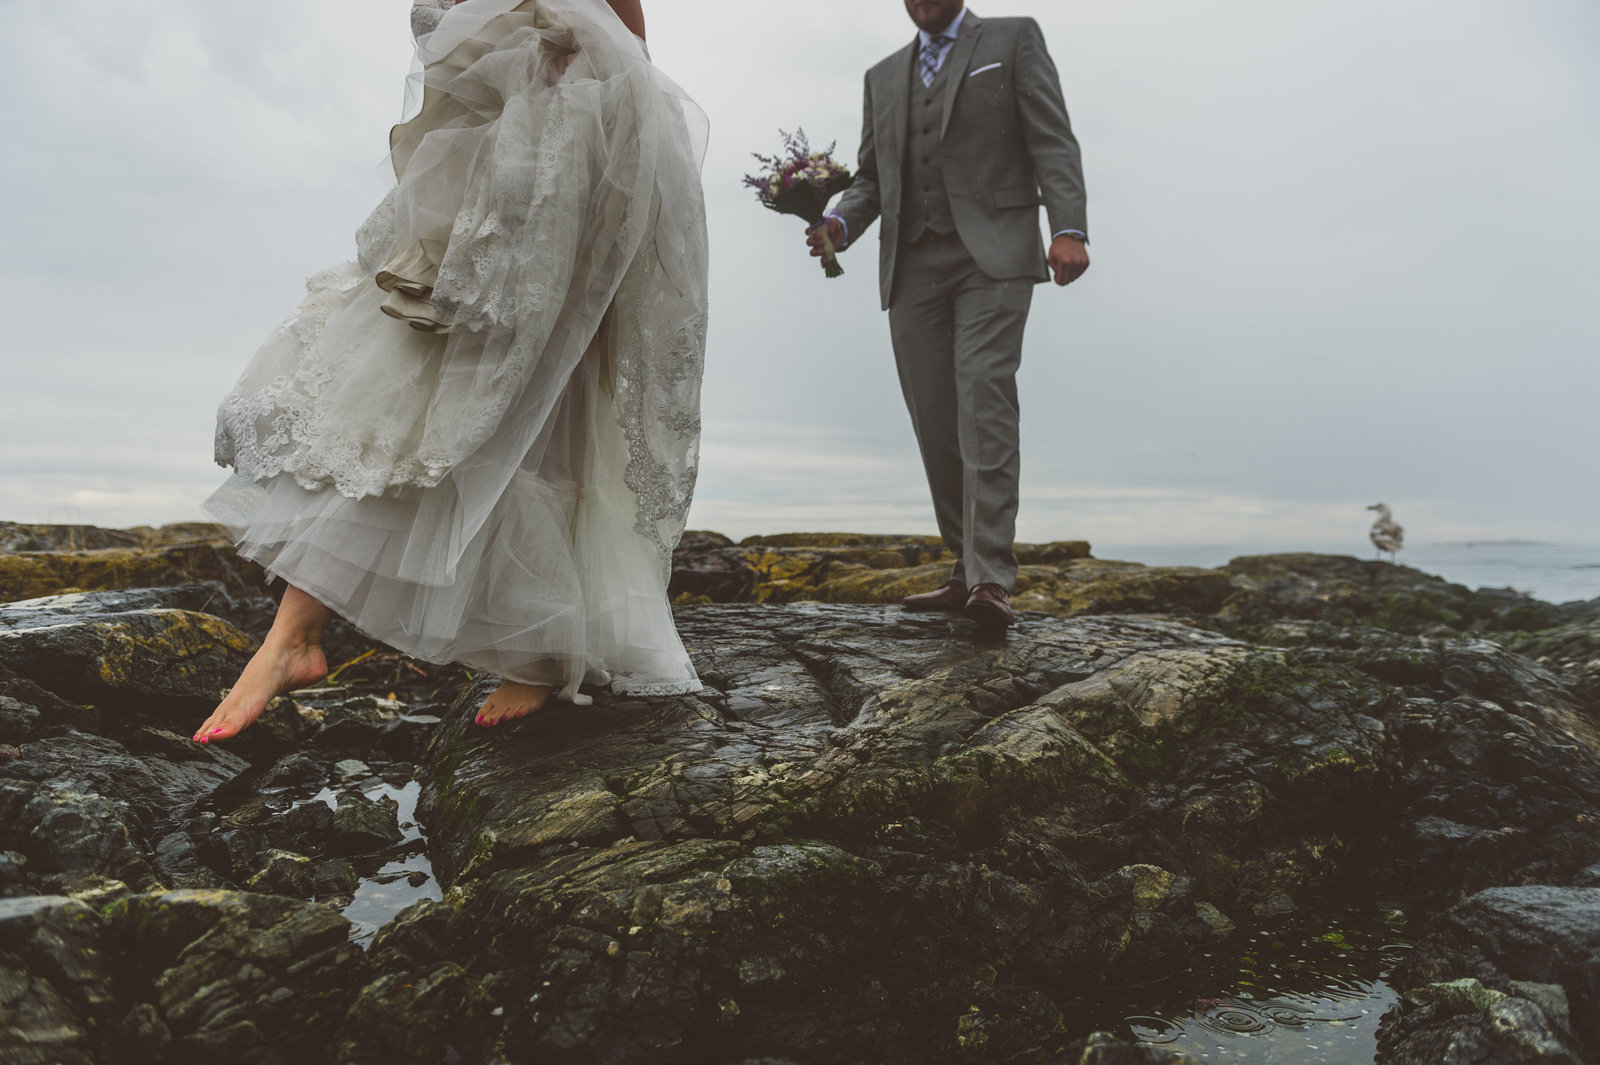 Artistic-Wedding-Photographer-38